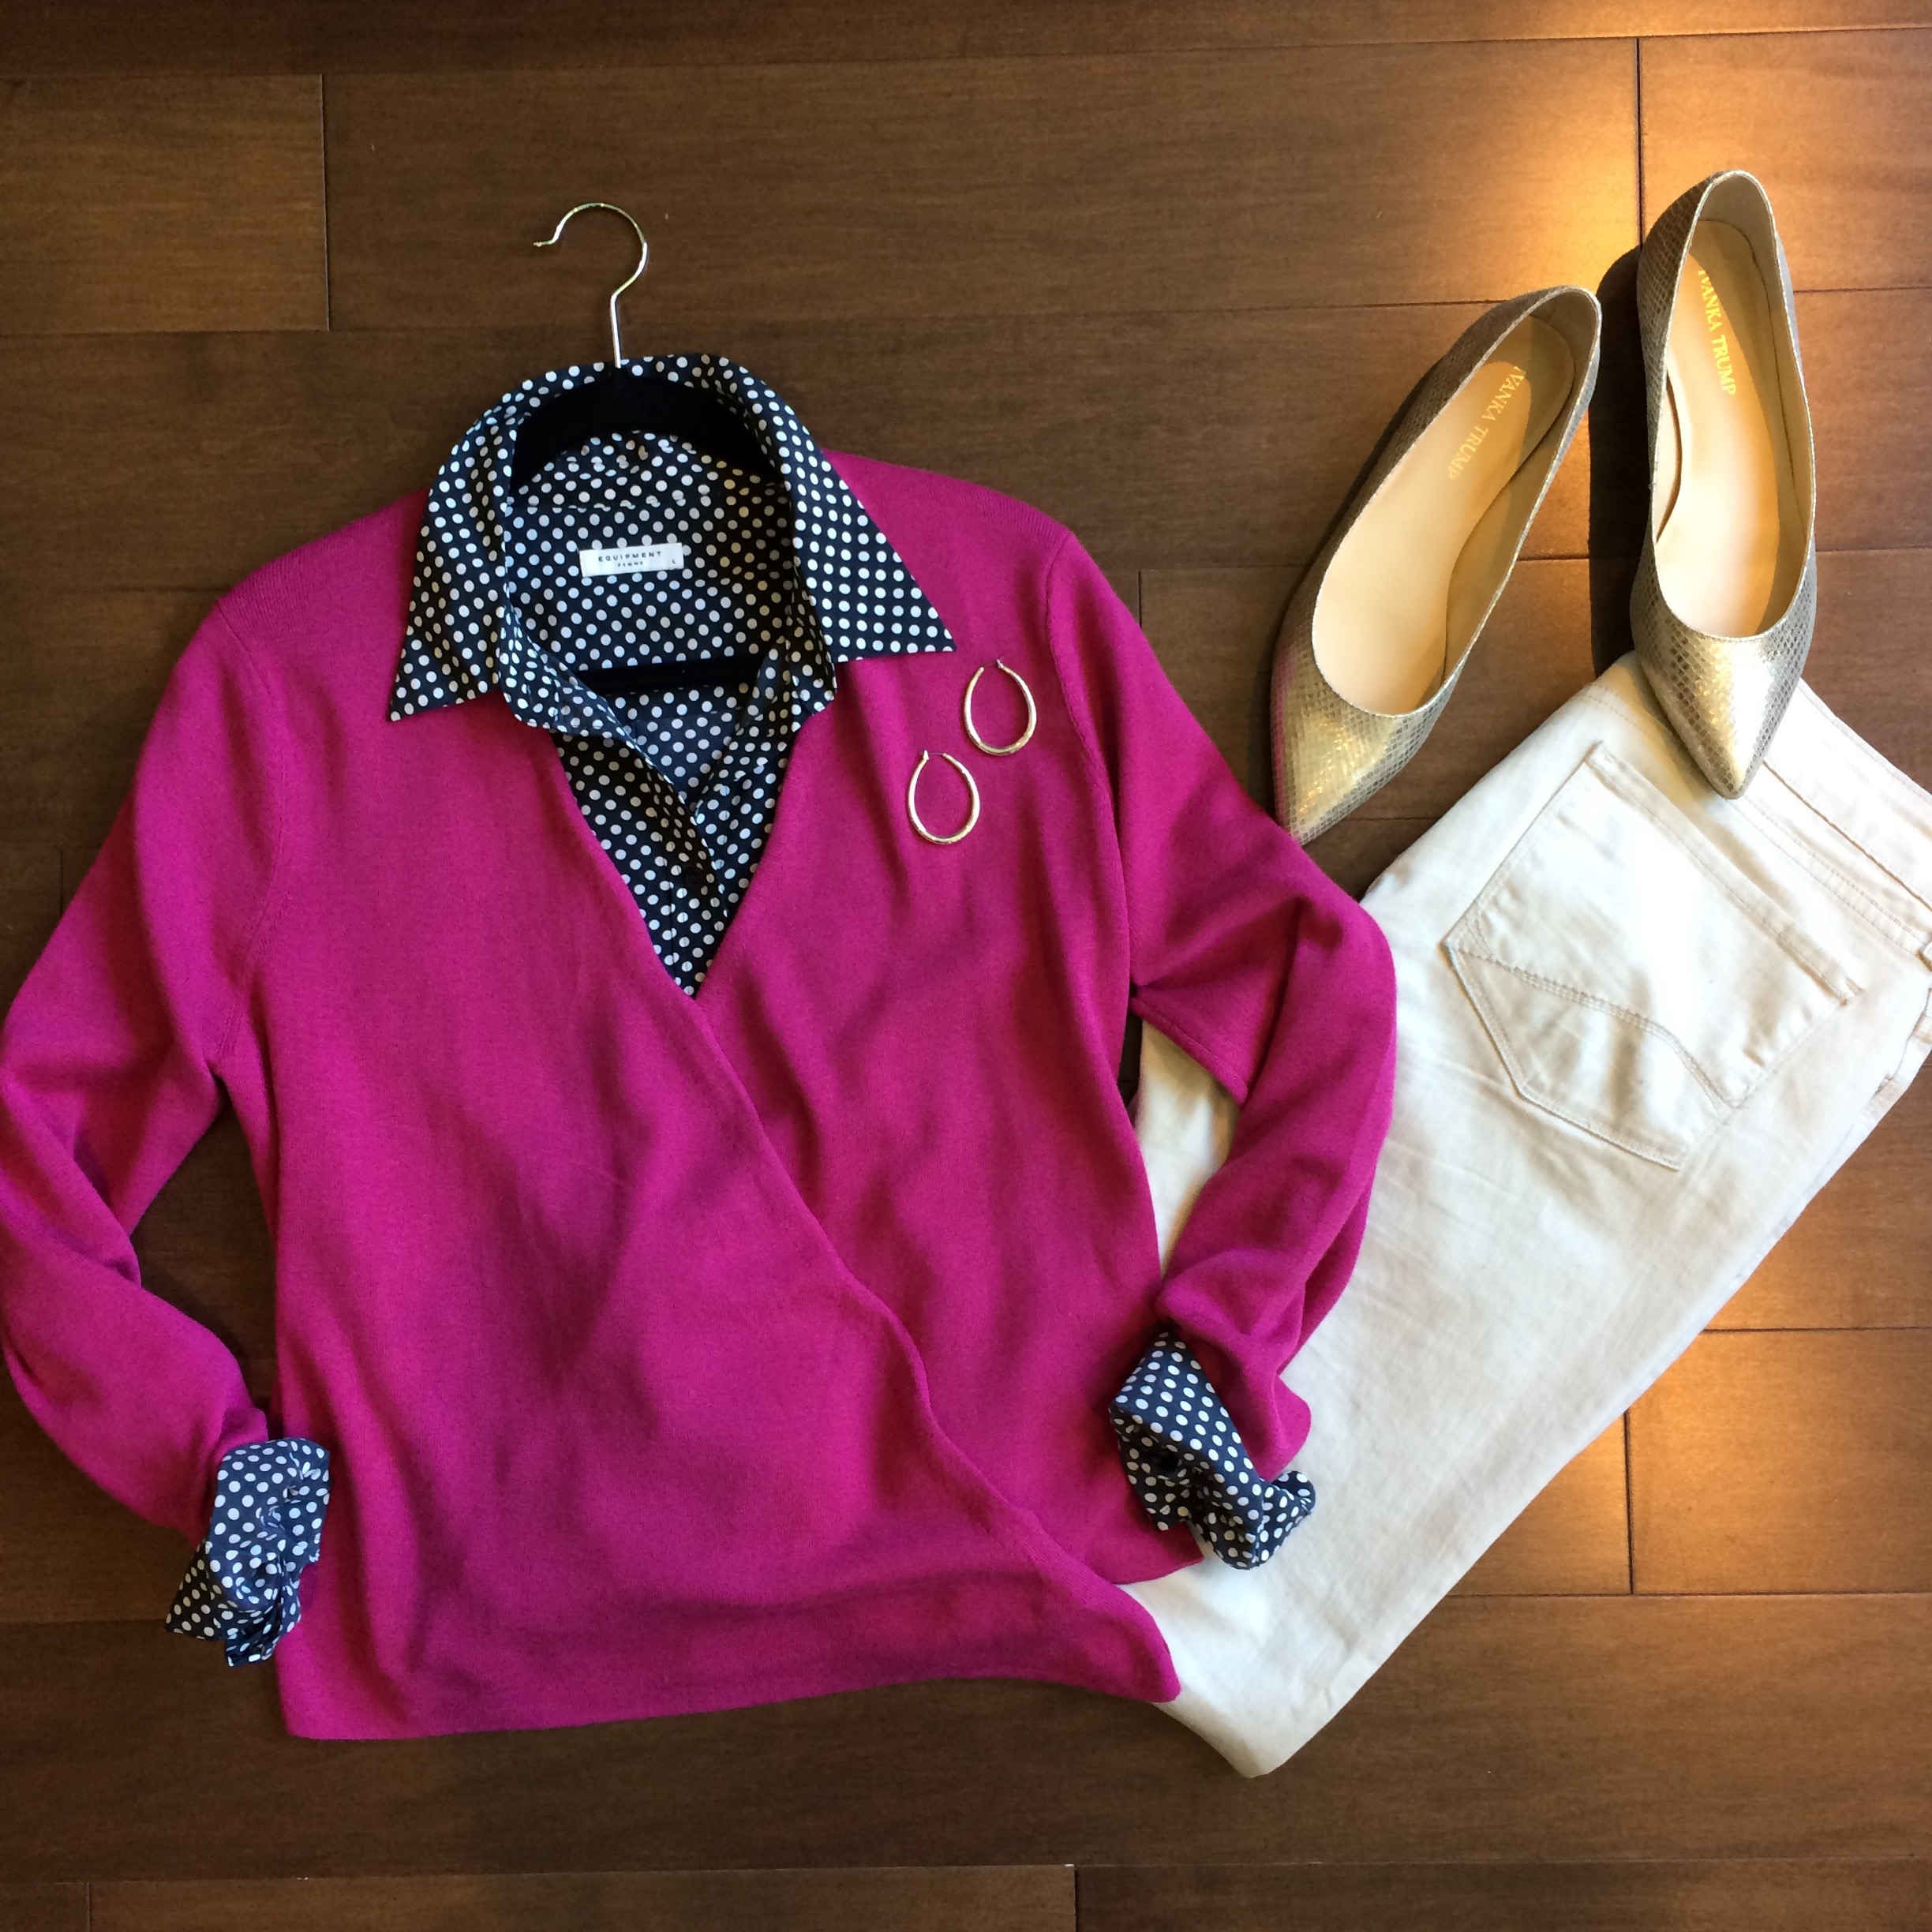 I created this outfit for a client who works in a very business casual office, but wanted to crank it up a notch. So we took a navy dot blouse and white jeans (already in her closet) and added this wrap cardigan for a look that's professional and polished, but not stuffy or too dressed up.